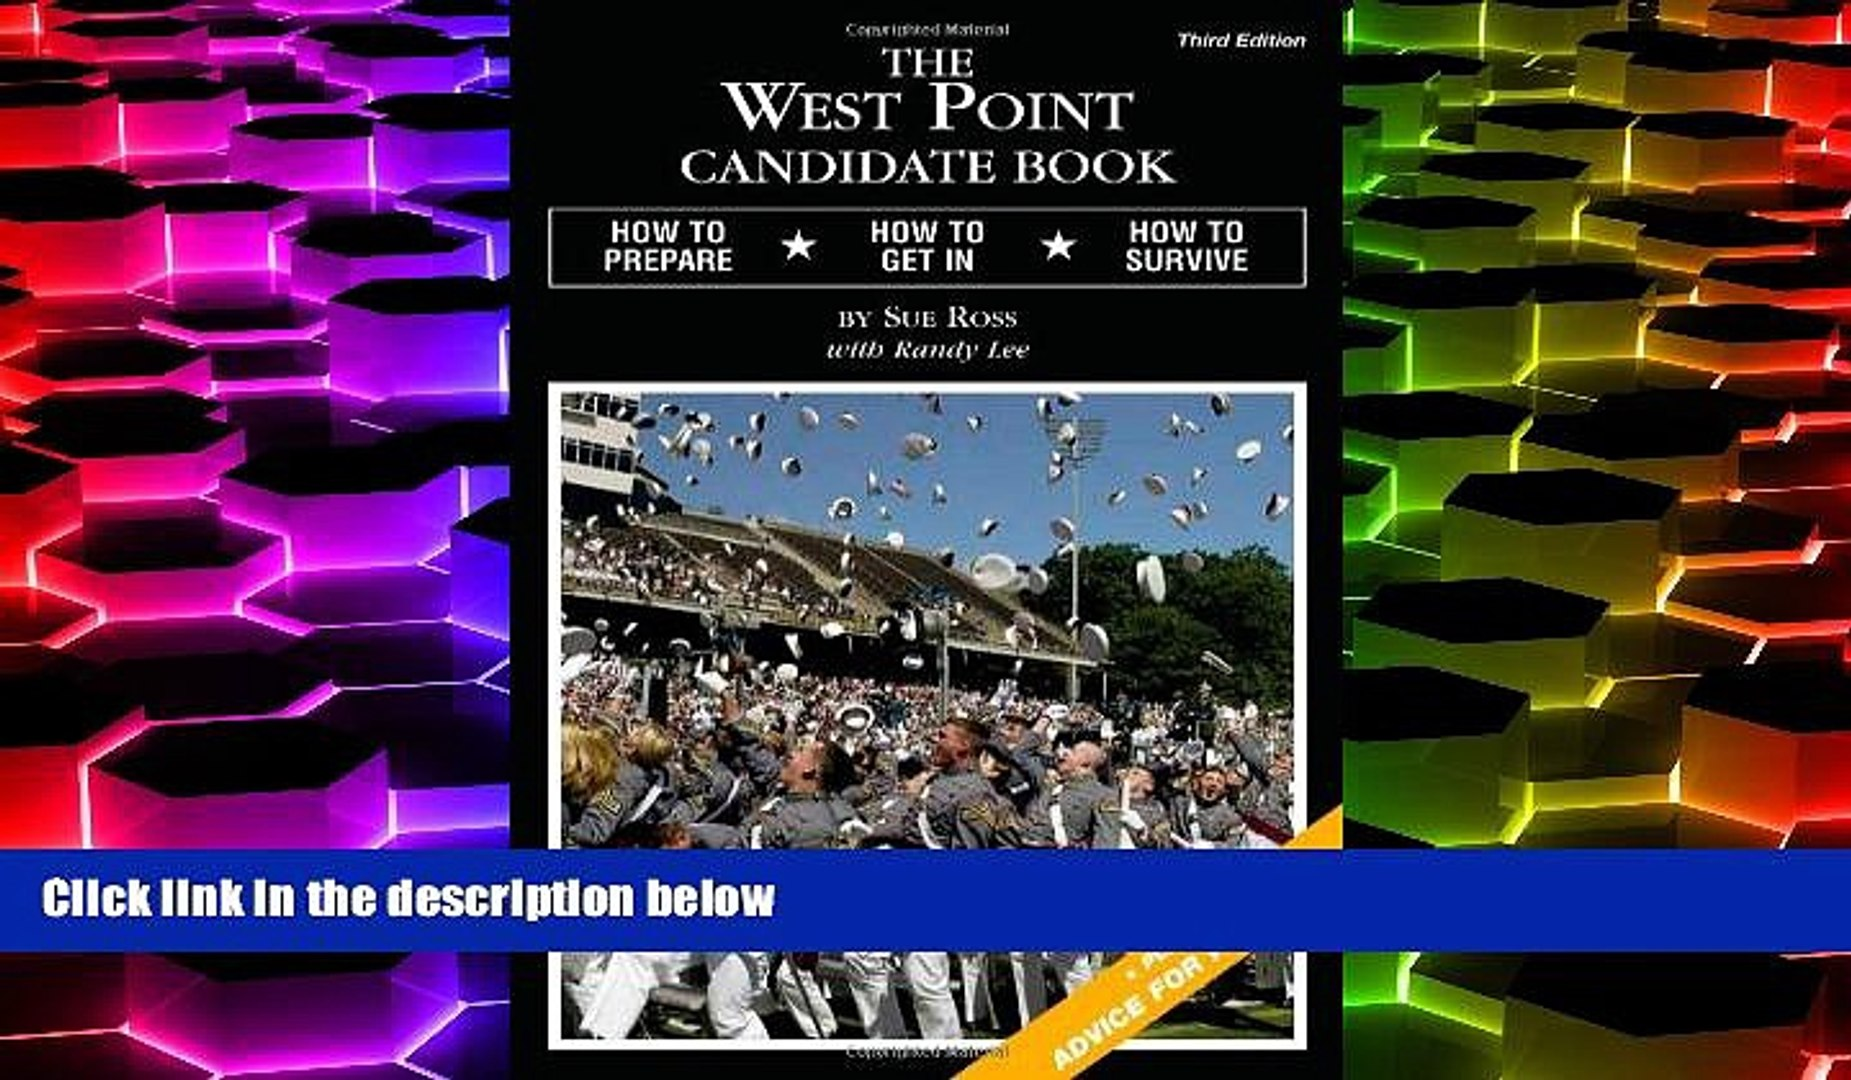 Price The West Point Candidate Book: How to Prepare, How to Get In, How to Survive Sue Ross For